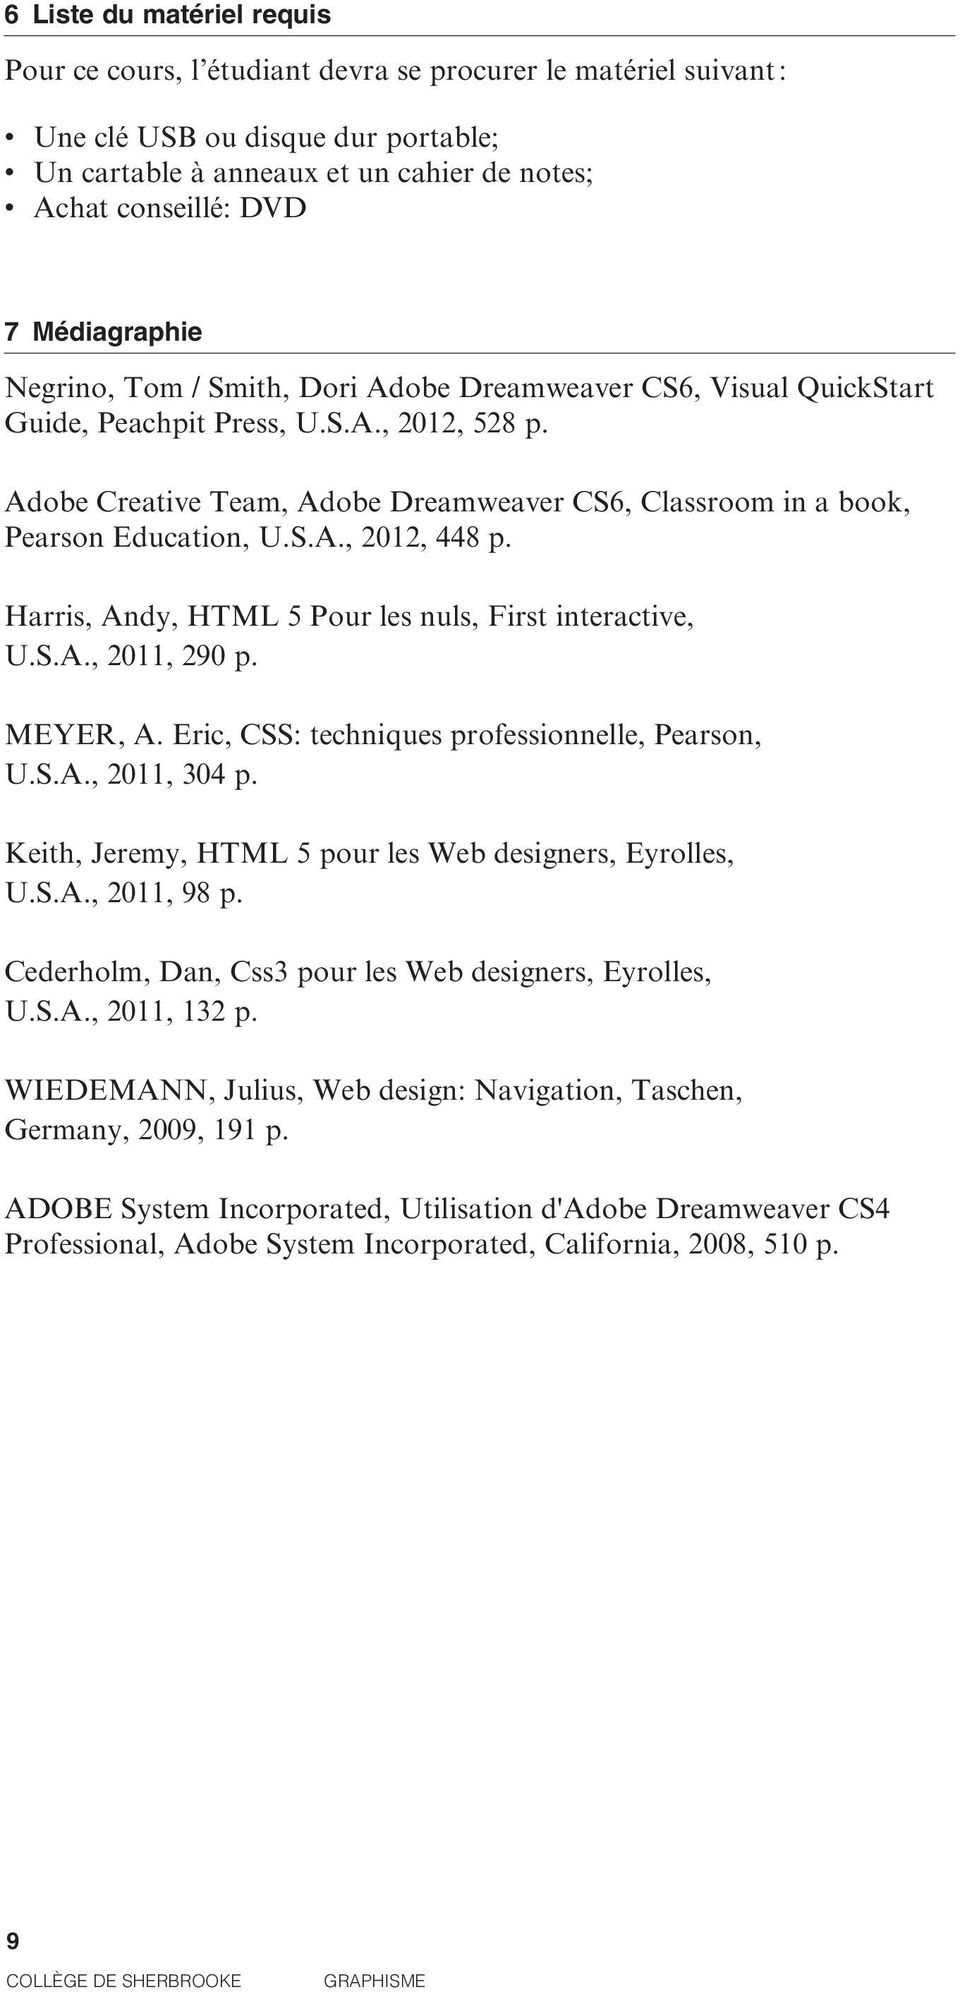 Adobe Creative Team, Adobe Dreamweaver CS6, Classroom in a book, Pearson Education, U.S.A., 2012, 448 p. Harris, Andy, HTML 5 Pour les nuls, First interactive, U.S.A., 2011, 290 p. MEYER, A.